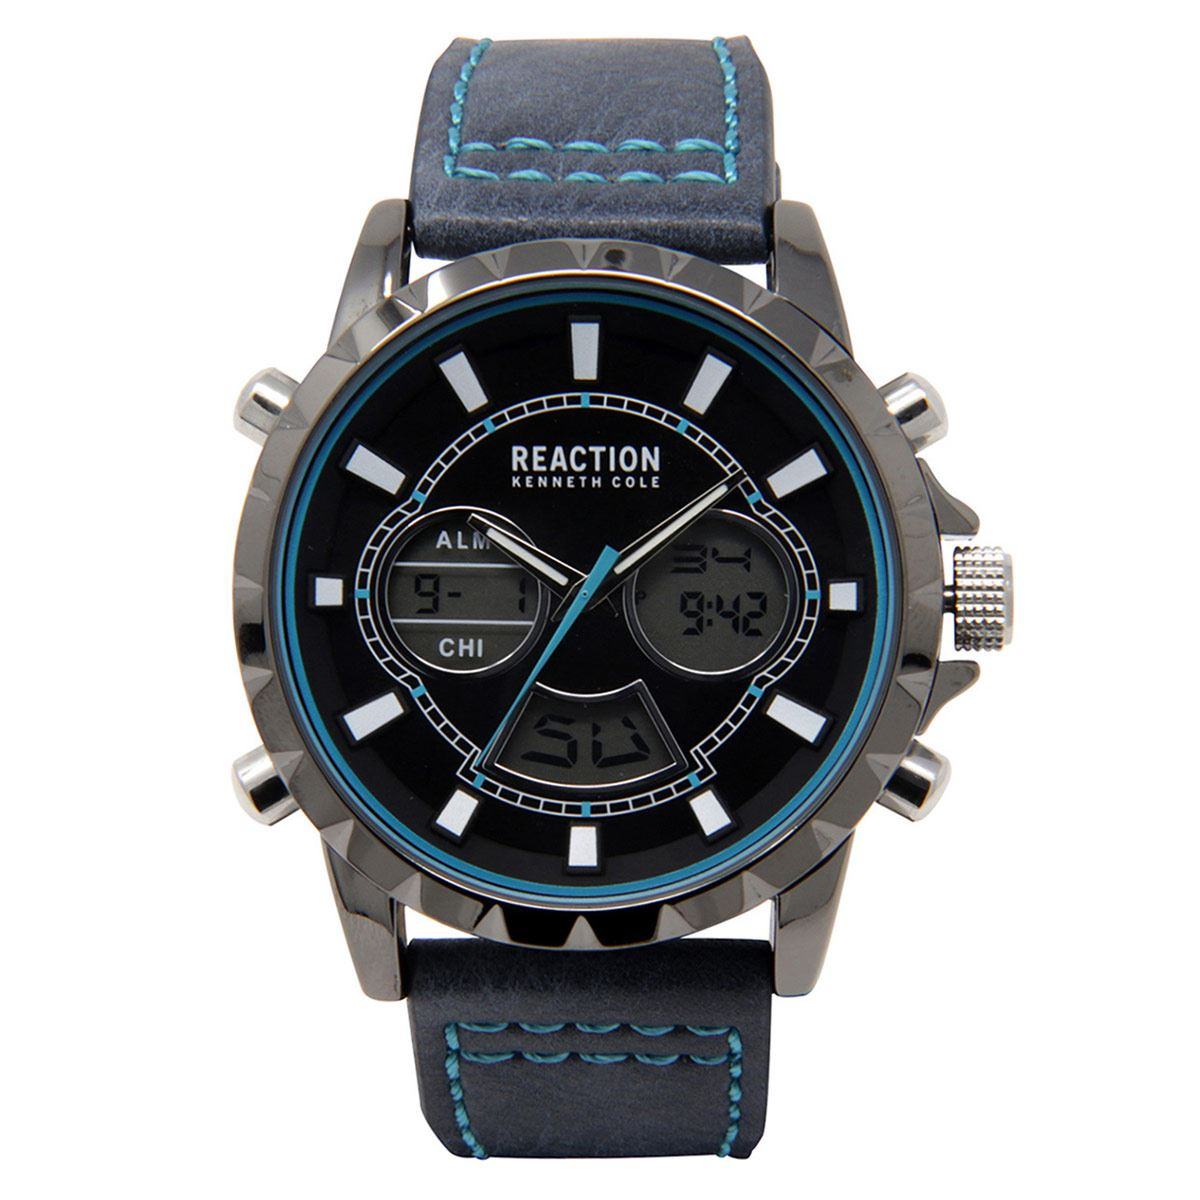 Reloj Kenneth Cole Reaction RK50966008 Para Caballero